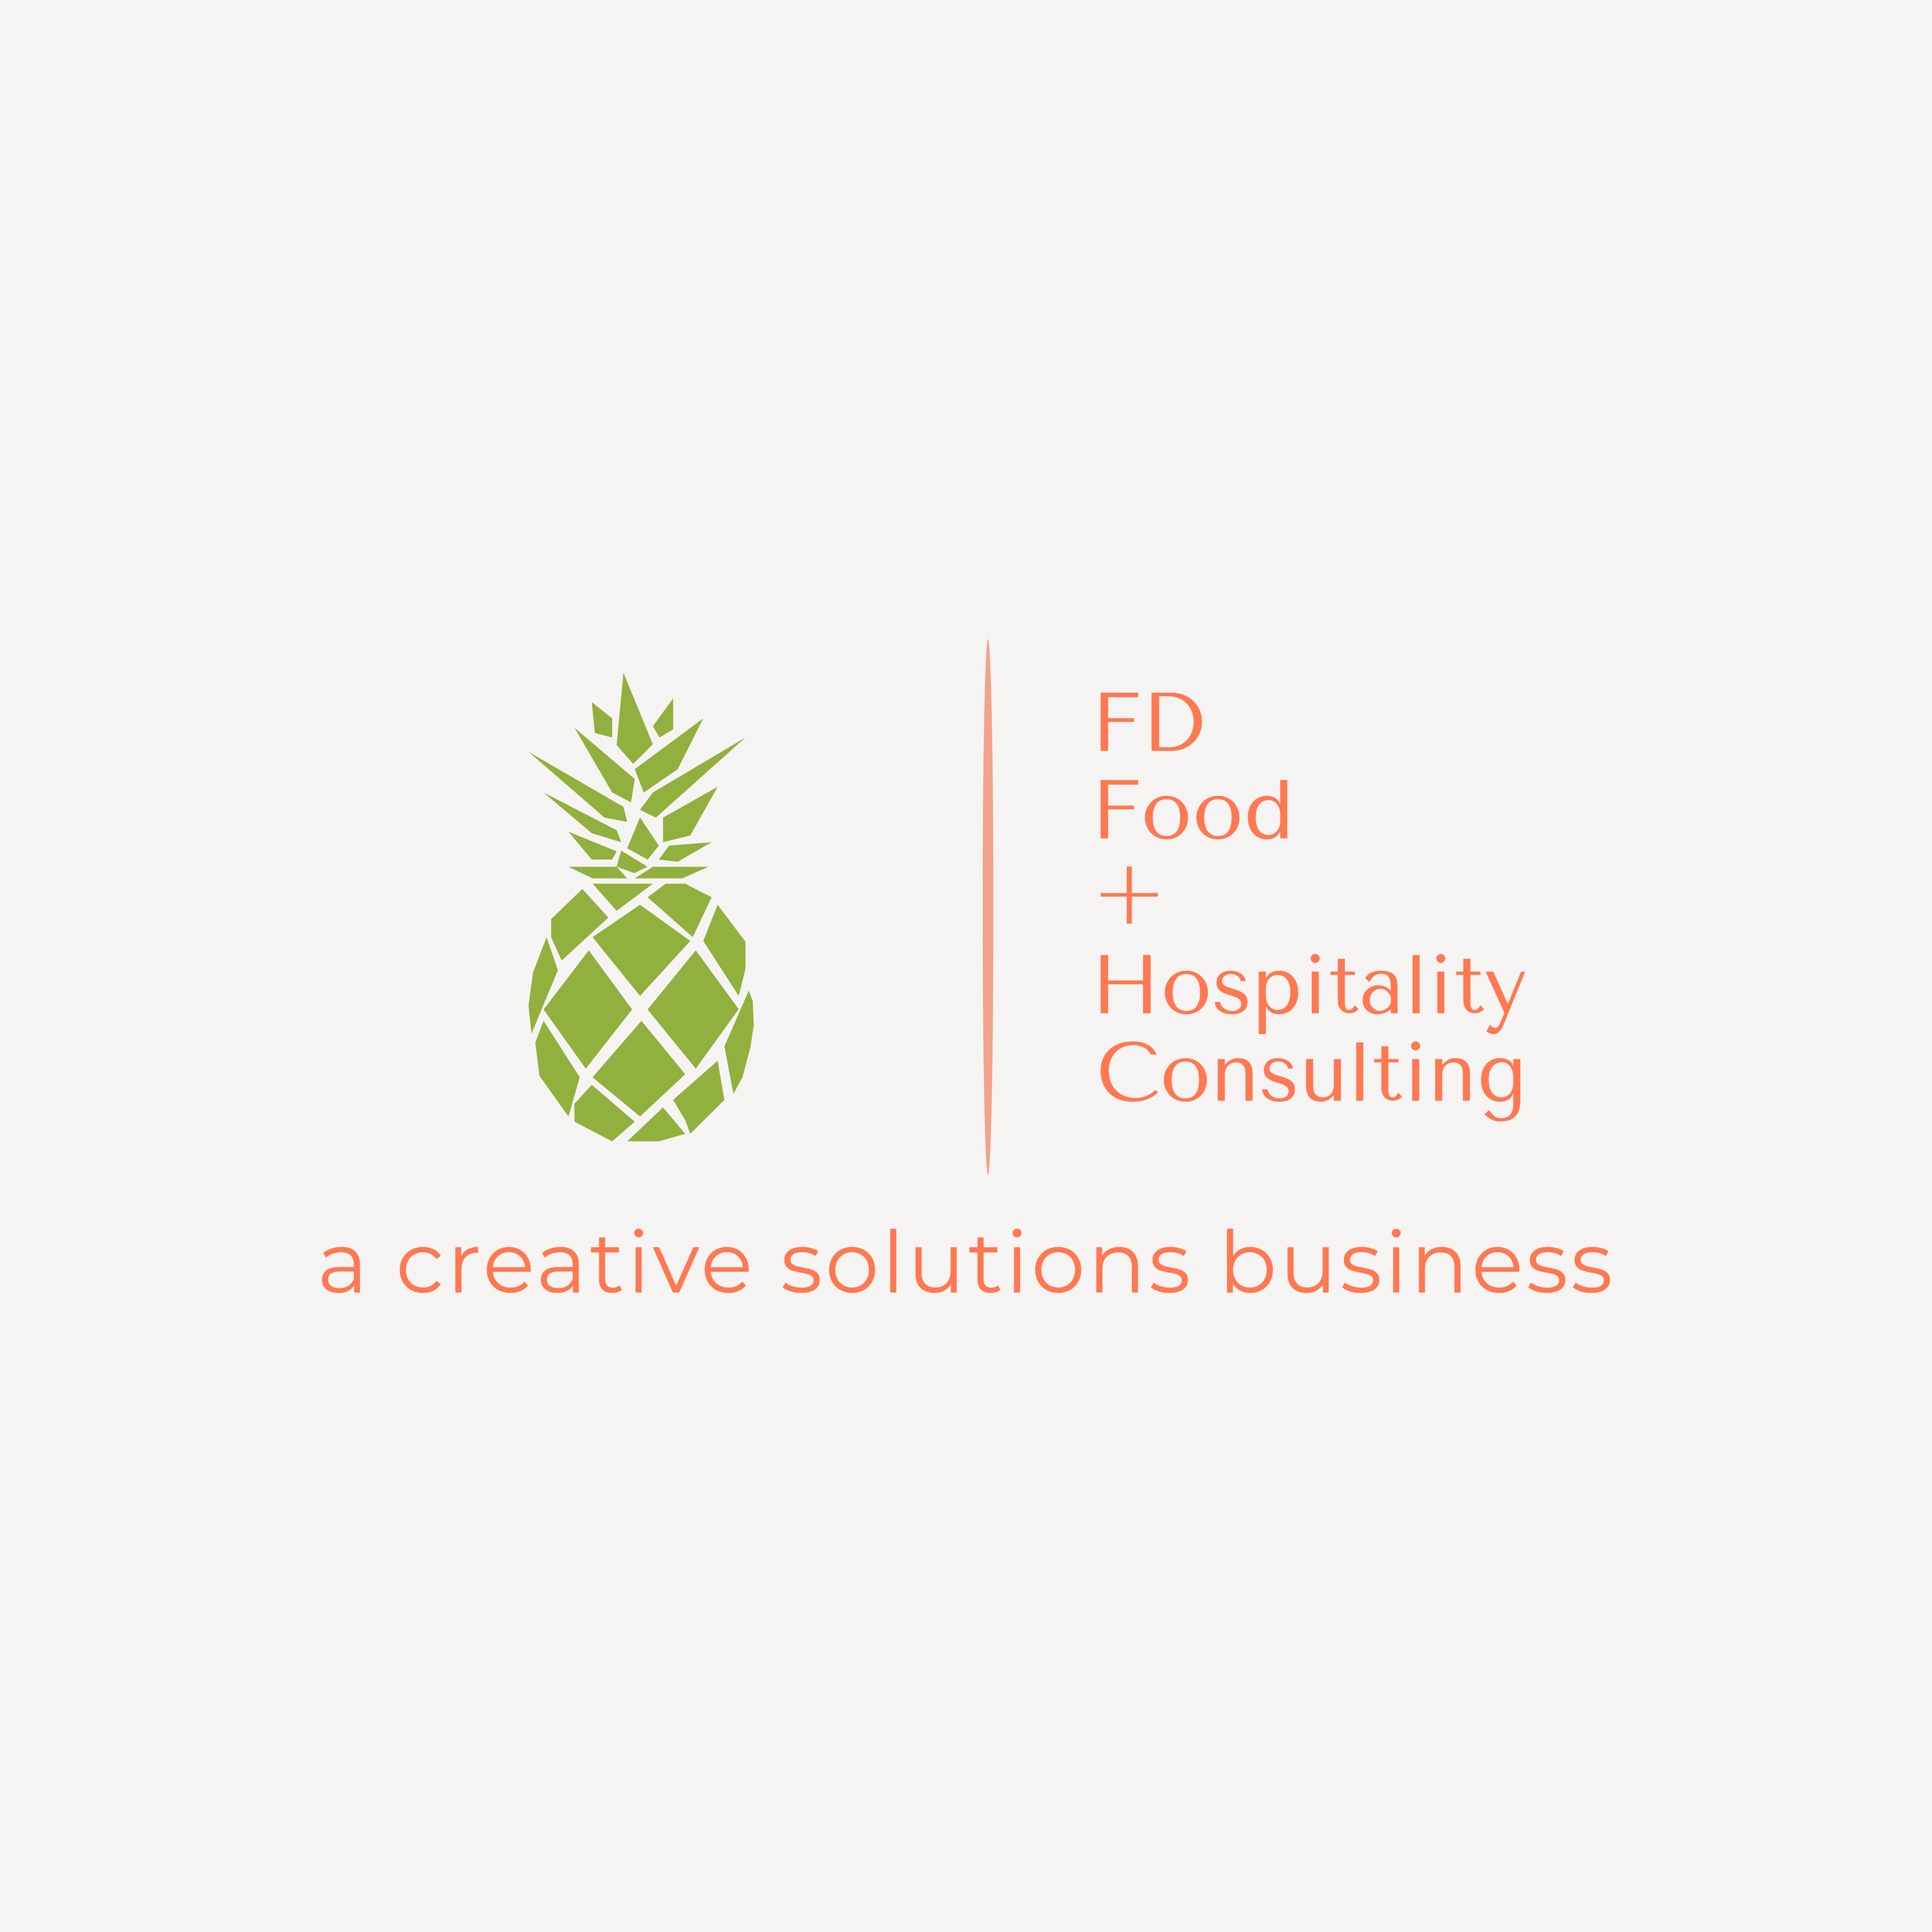 FD Food + Hospitality Consulting